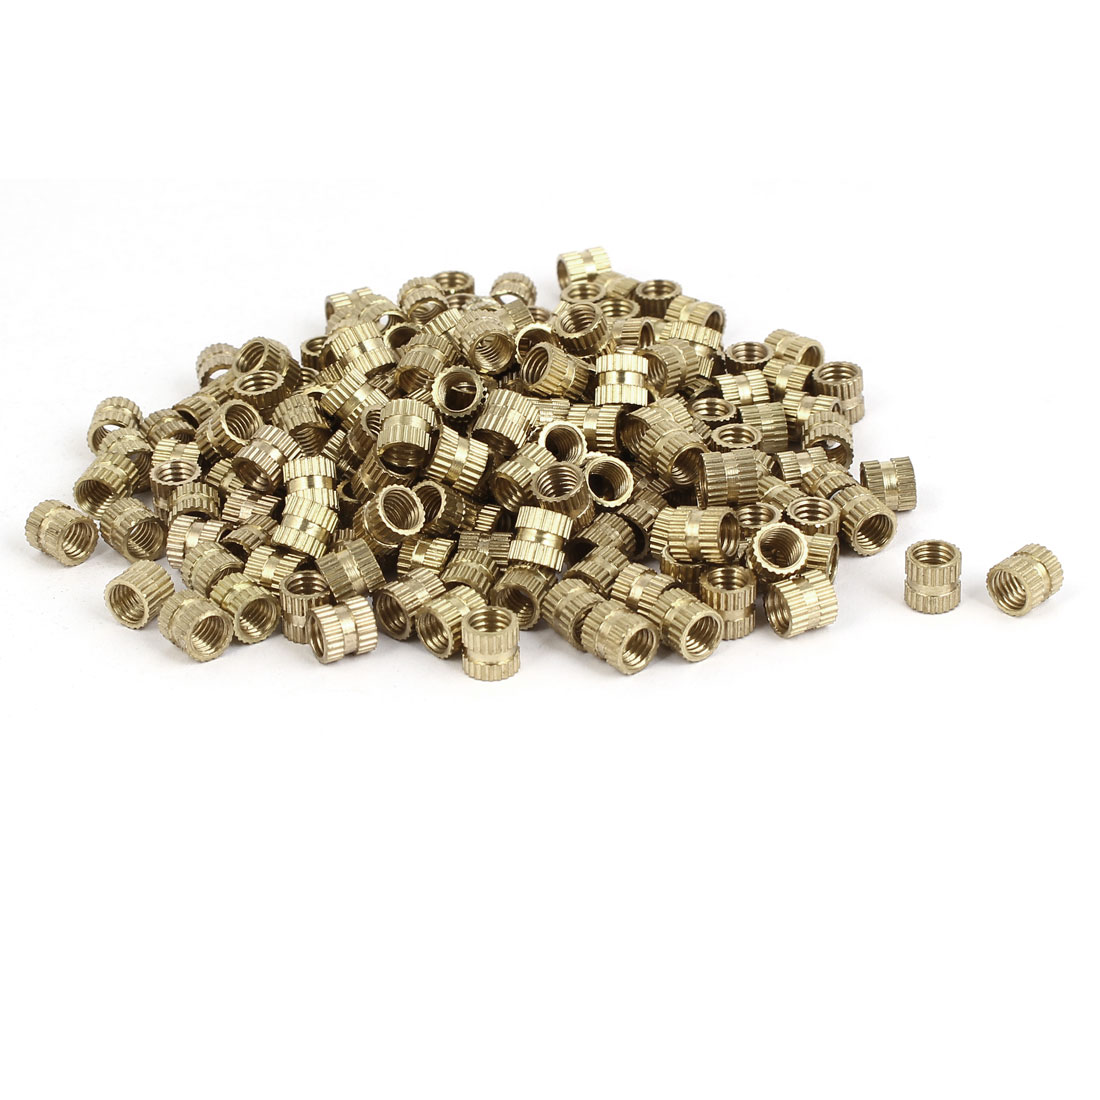 M5 x 6mm 0.8mm Pitch Brass Knurled Threaded Round Insert Embedment Nuts 200PCS